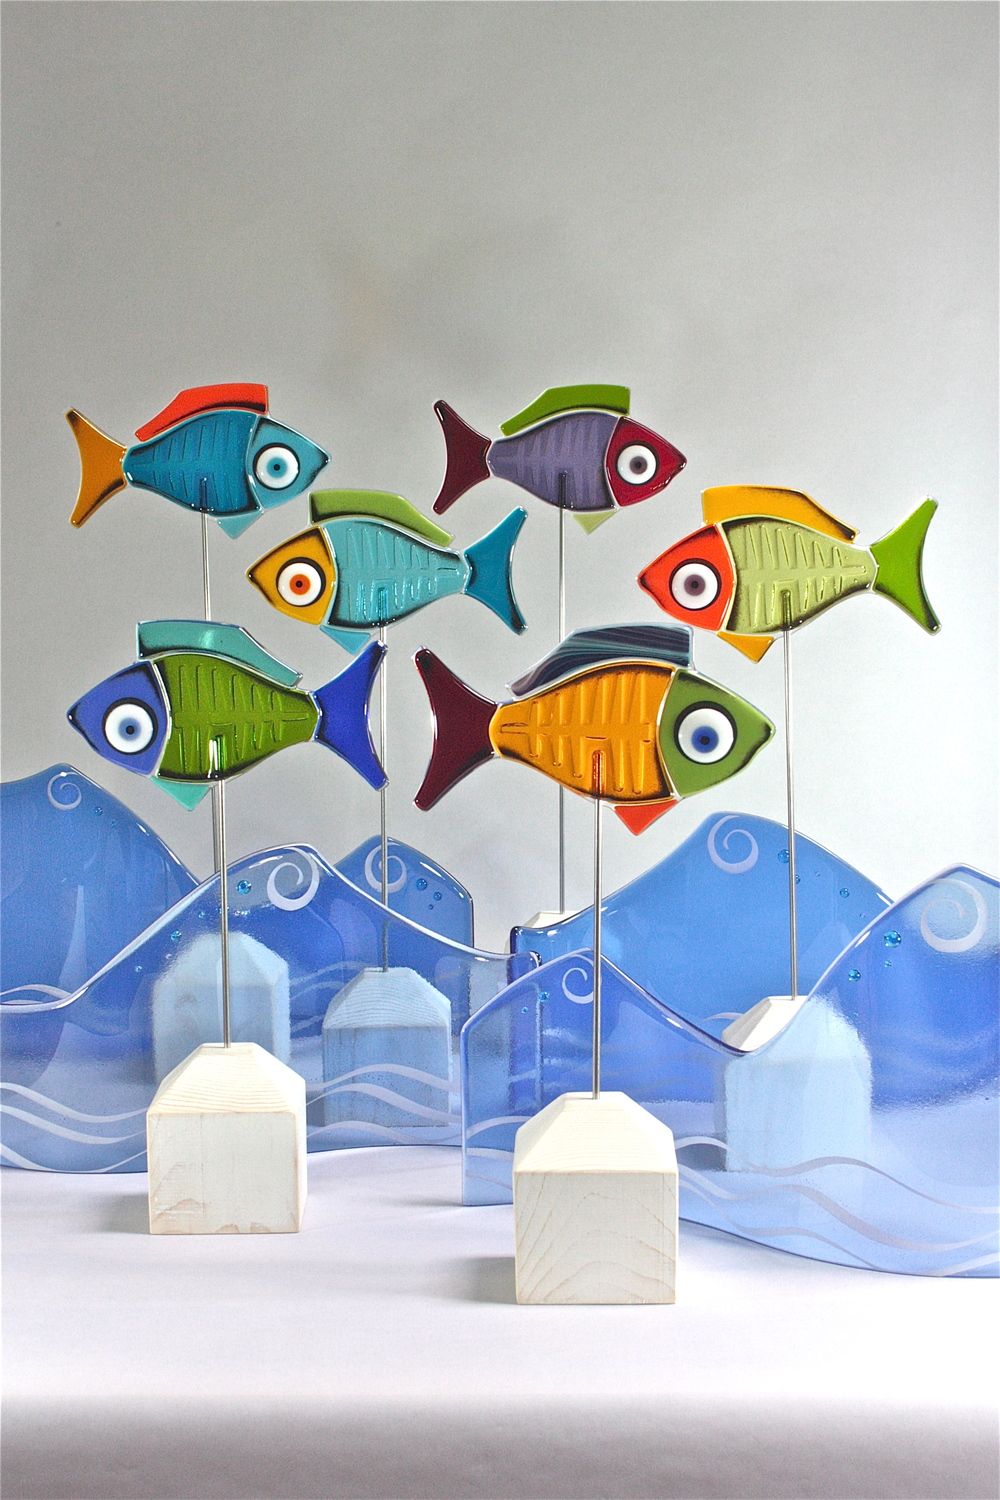 Our Fish are the perfect addition to any washroom.